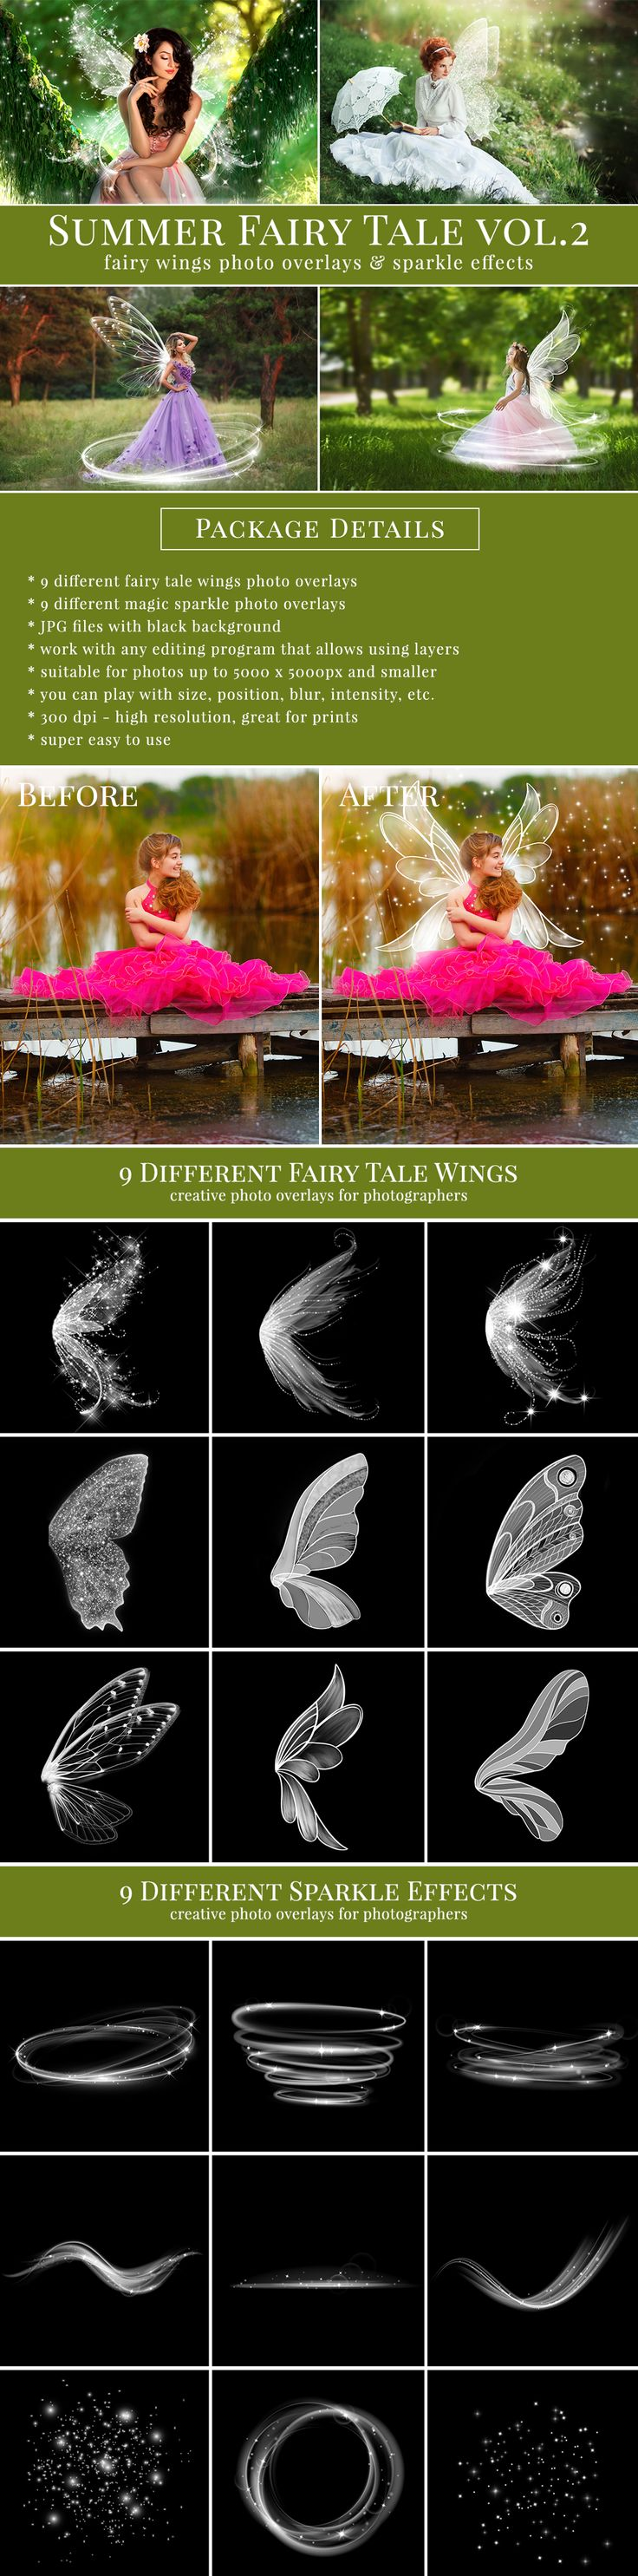 Creative fairy wings photo overlays with sparkle effects overlays. Great for mini sessions. Professional photo overlays for Photoshop, Zoner, Gimp etc. Super easy to use, very pretty result just in one minute. Photo overlays for creative photographer from Brown Leopard.